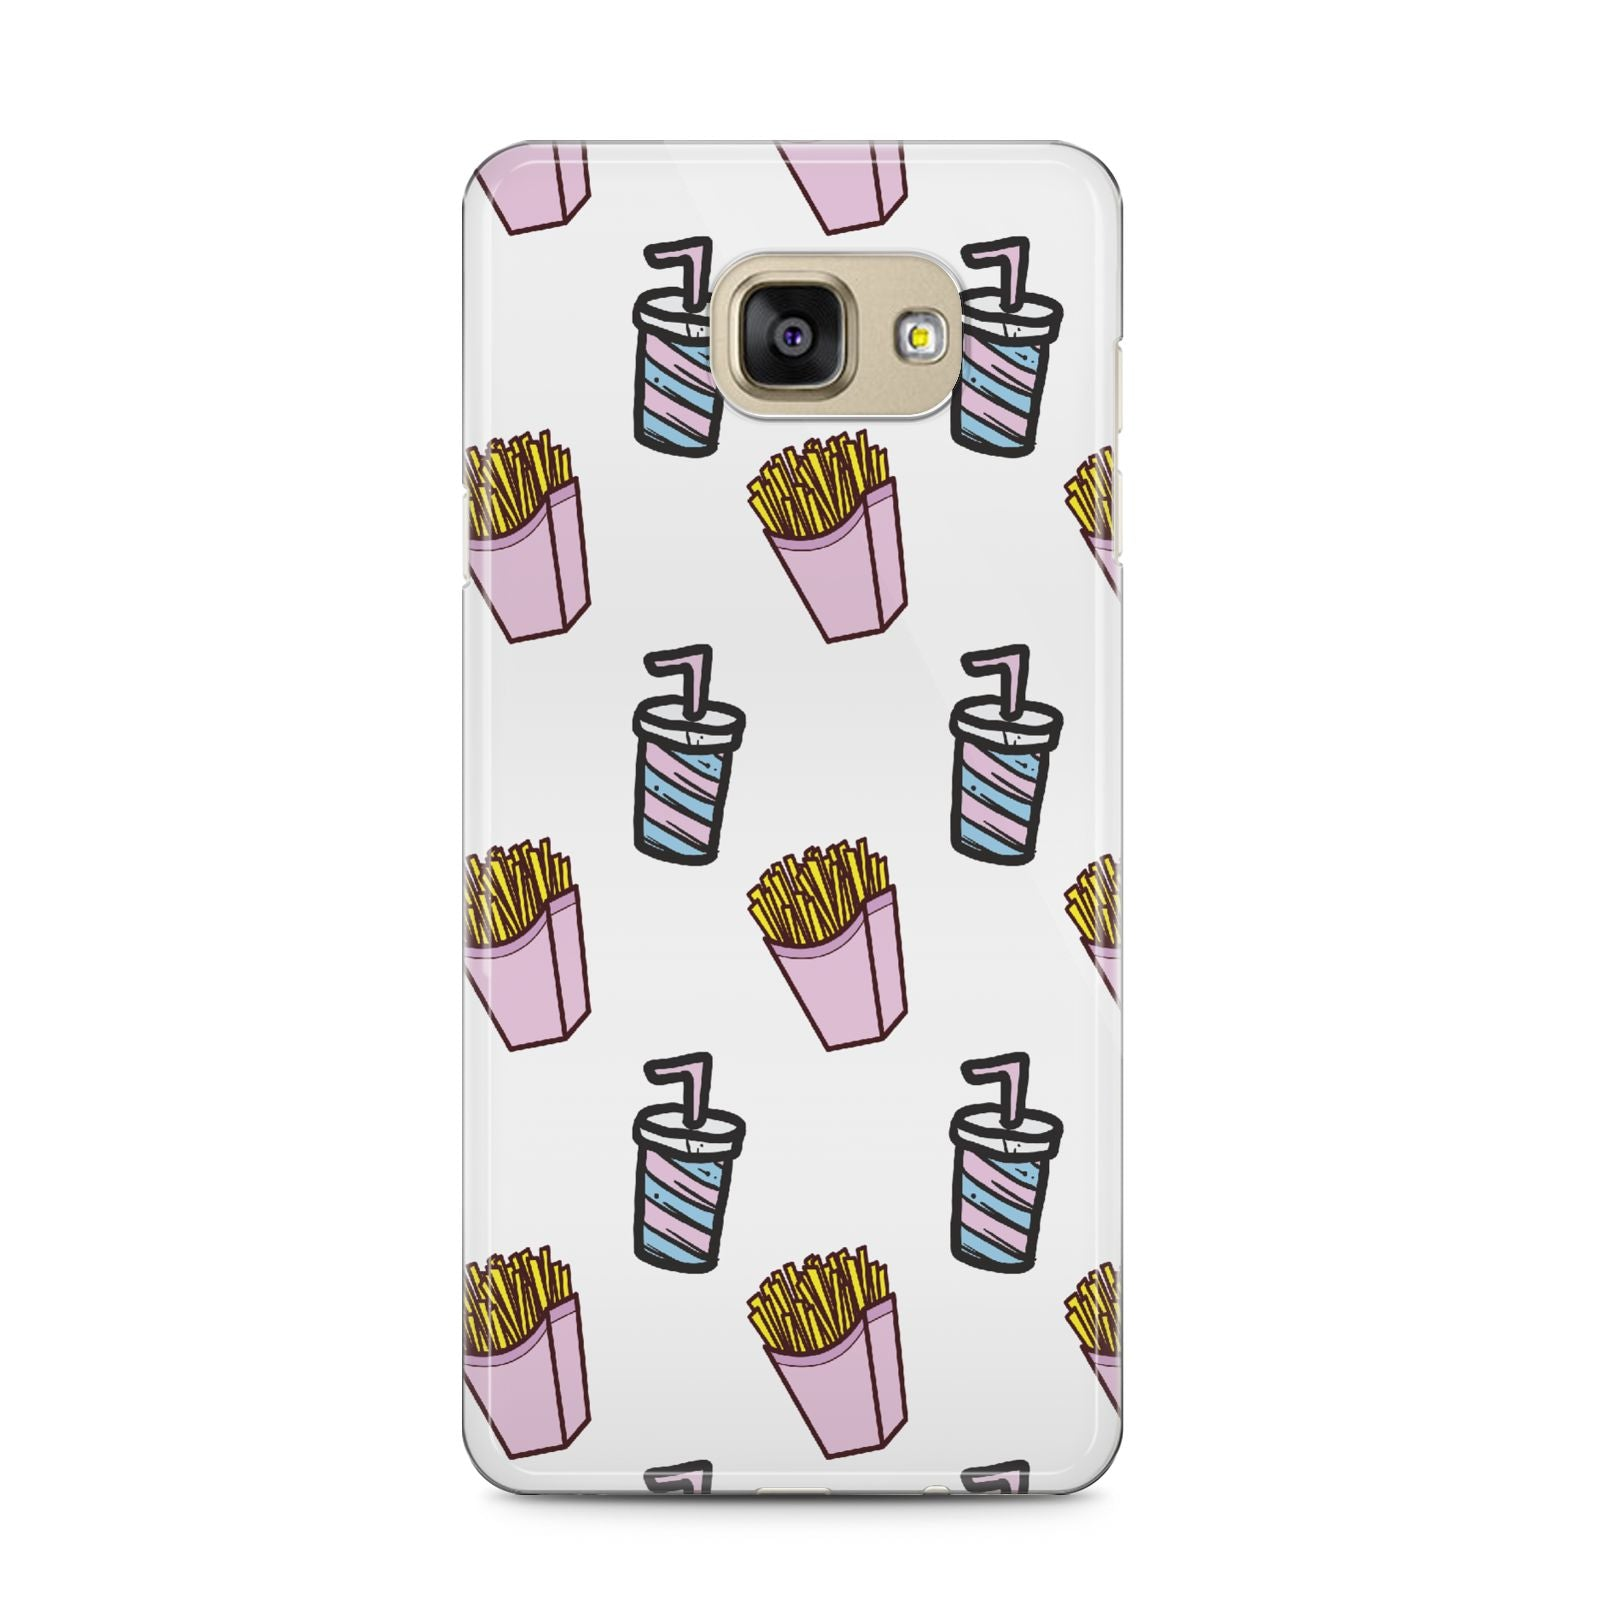 Fries Shake Fast Food Samsung Galaxy A5 2016 Case on gold phone